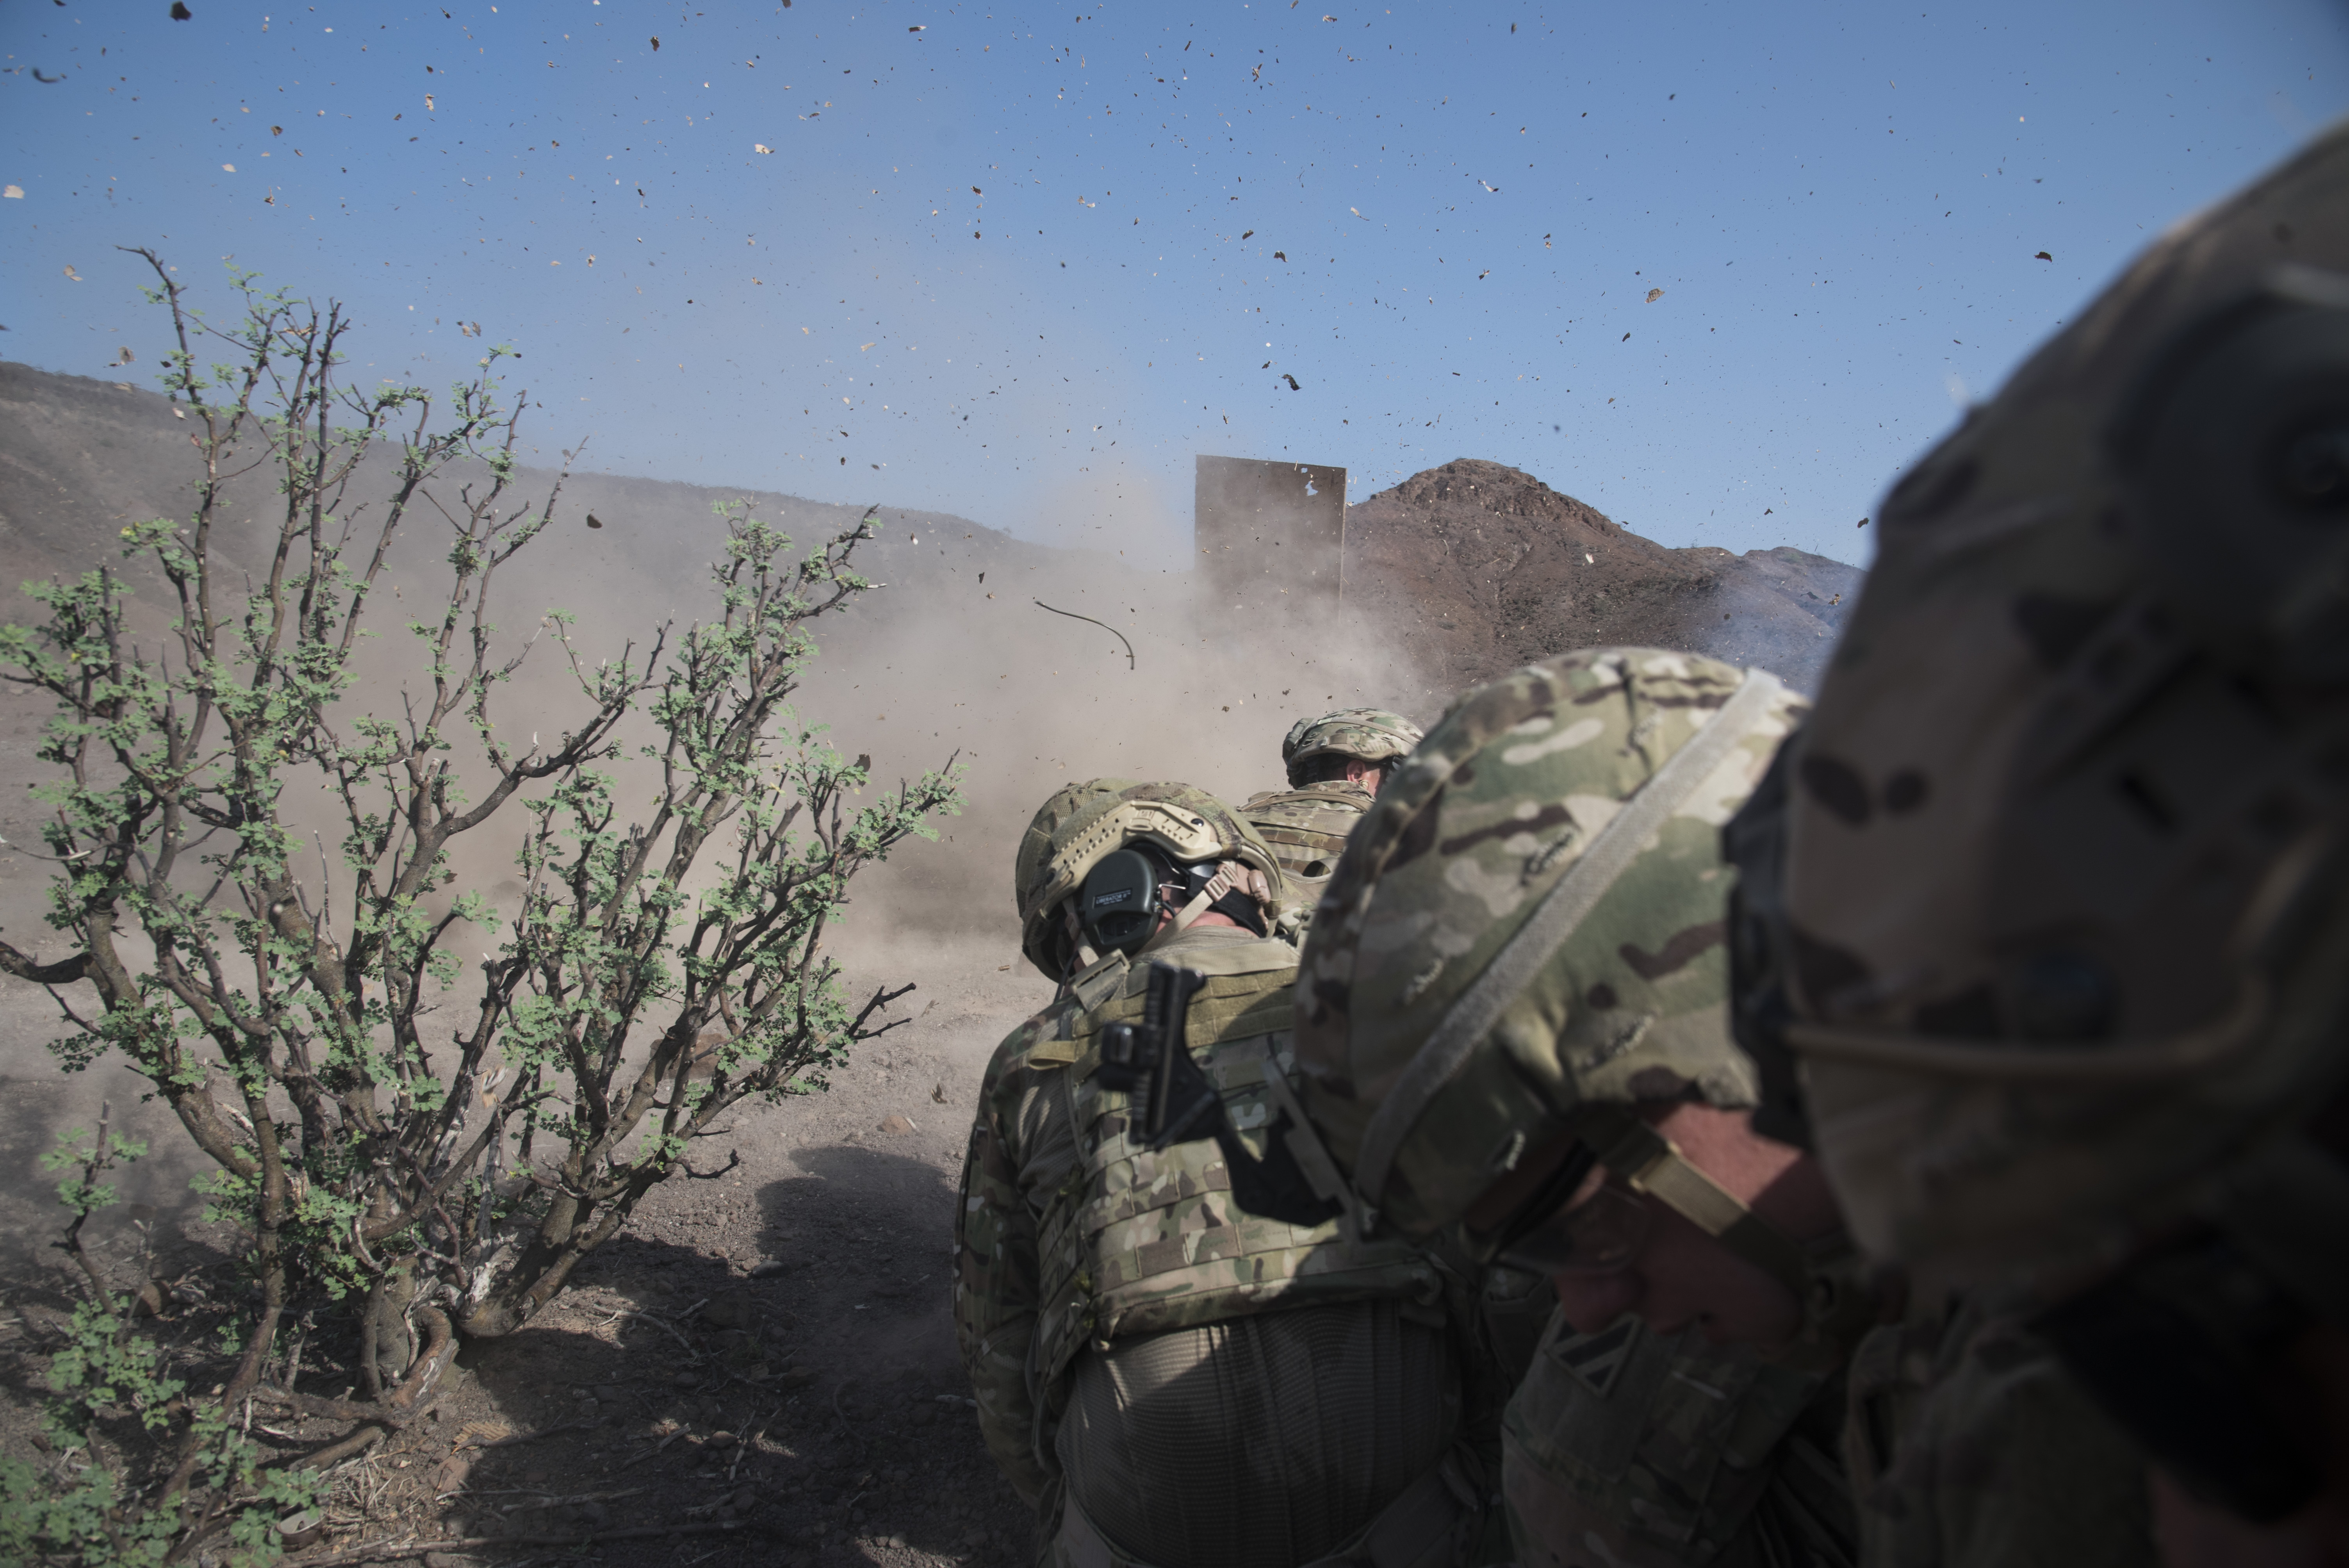 U.S. Army Soldiers from the Bravo Company, 3rd Battalion, 15th Infantry Regiment, detonate explosives secured to a wood board during demolition training to learn how to breach through buildings, Aug. 30, 2016, in Arta, Djibouti. Bravo Co. 3/15 Inf. Rgt., from Fort Stewart, Ga., serves as the East Africa Response Force assigned to Combined Joint Task Force-Horn of Africa to provide rapid response and security to protect embassies and foreign assets in the area of responsibility of CJTF-HOA. (U.S. Air Force photo by Staff Sgt. Tiffany DeNault)